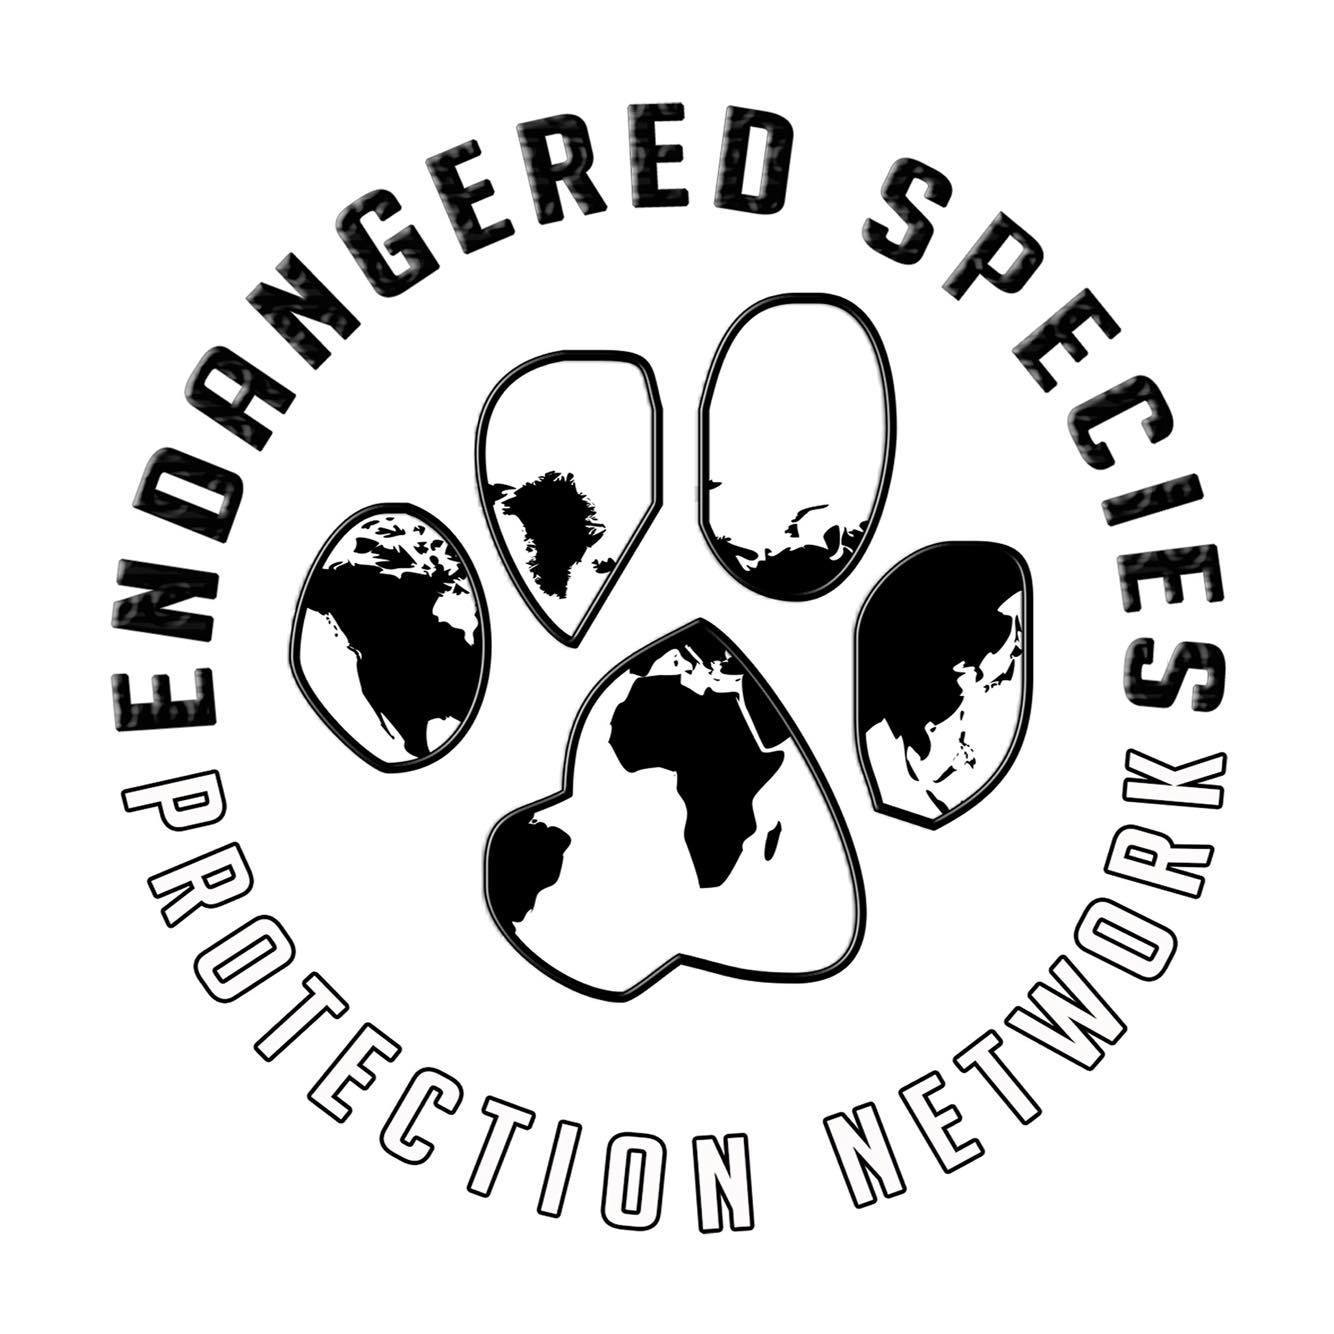 Endangered Species Protection Network